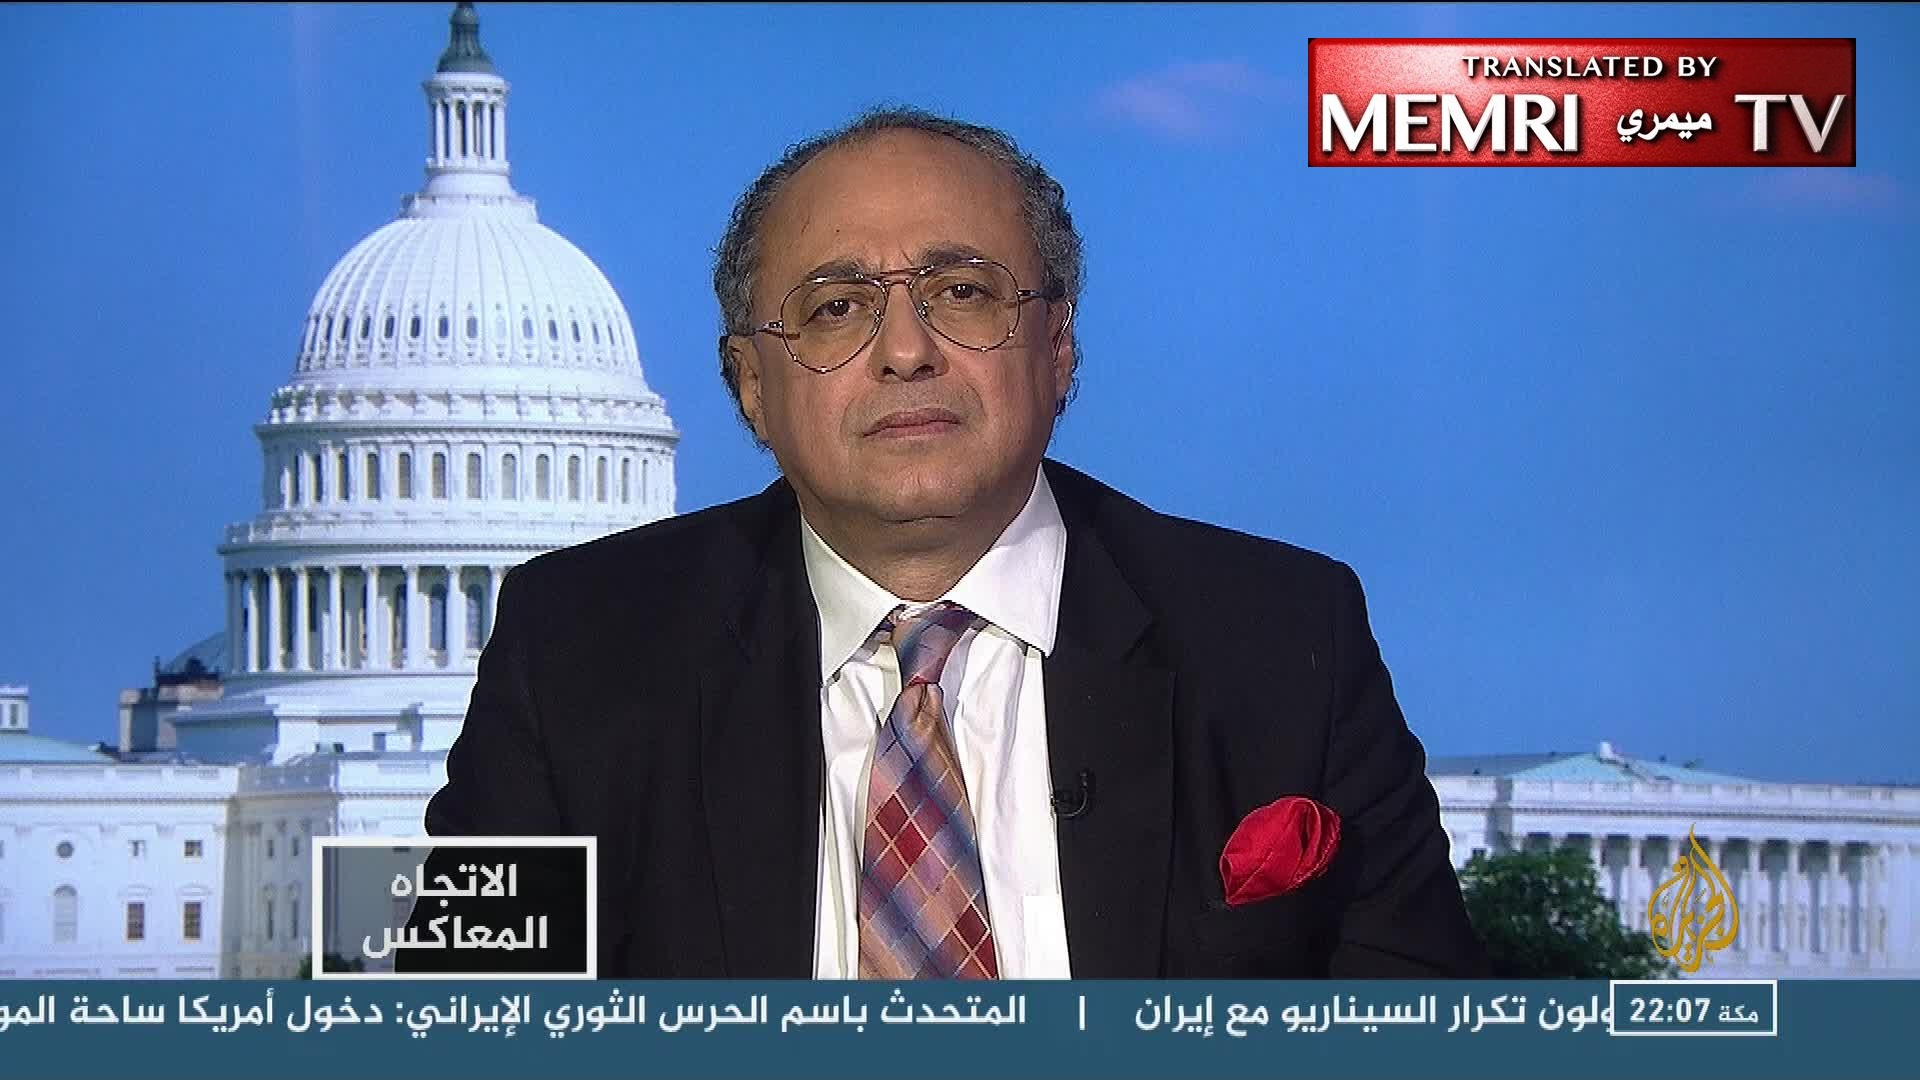 U.S.-Based Policy Researcher Dr. Tawfik Hamid: Muslim Brotherhood's Terrorist Designation Would Benefit Muslims